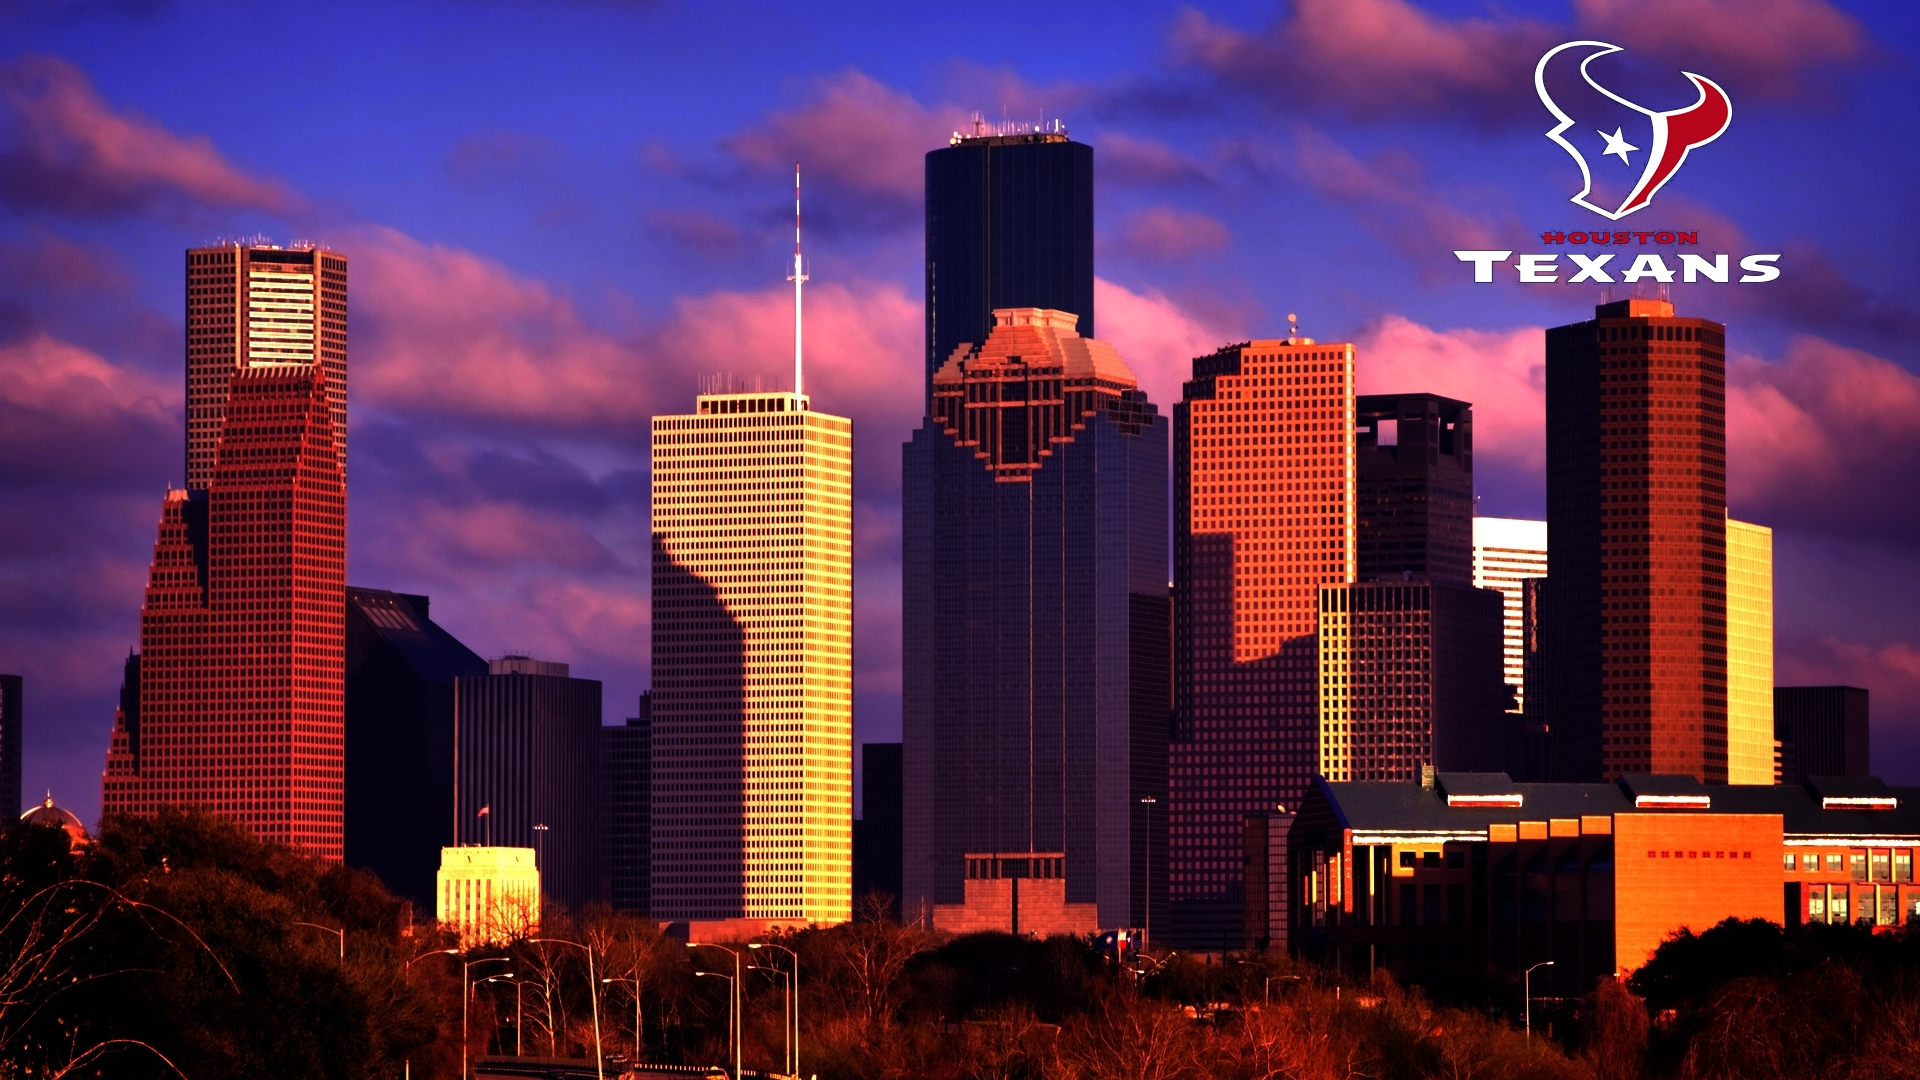 houston tx home of houston texans 1920x1080